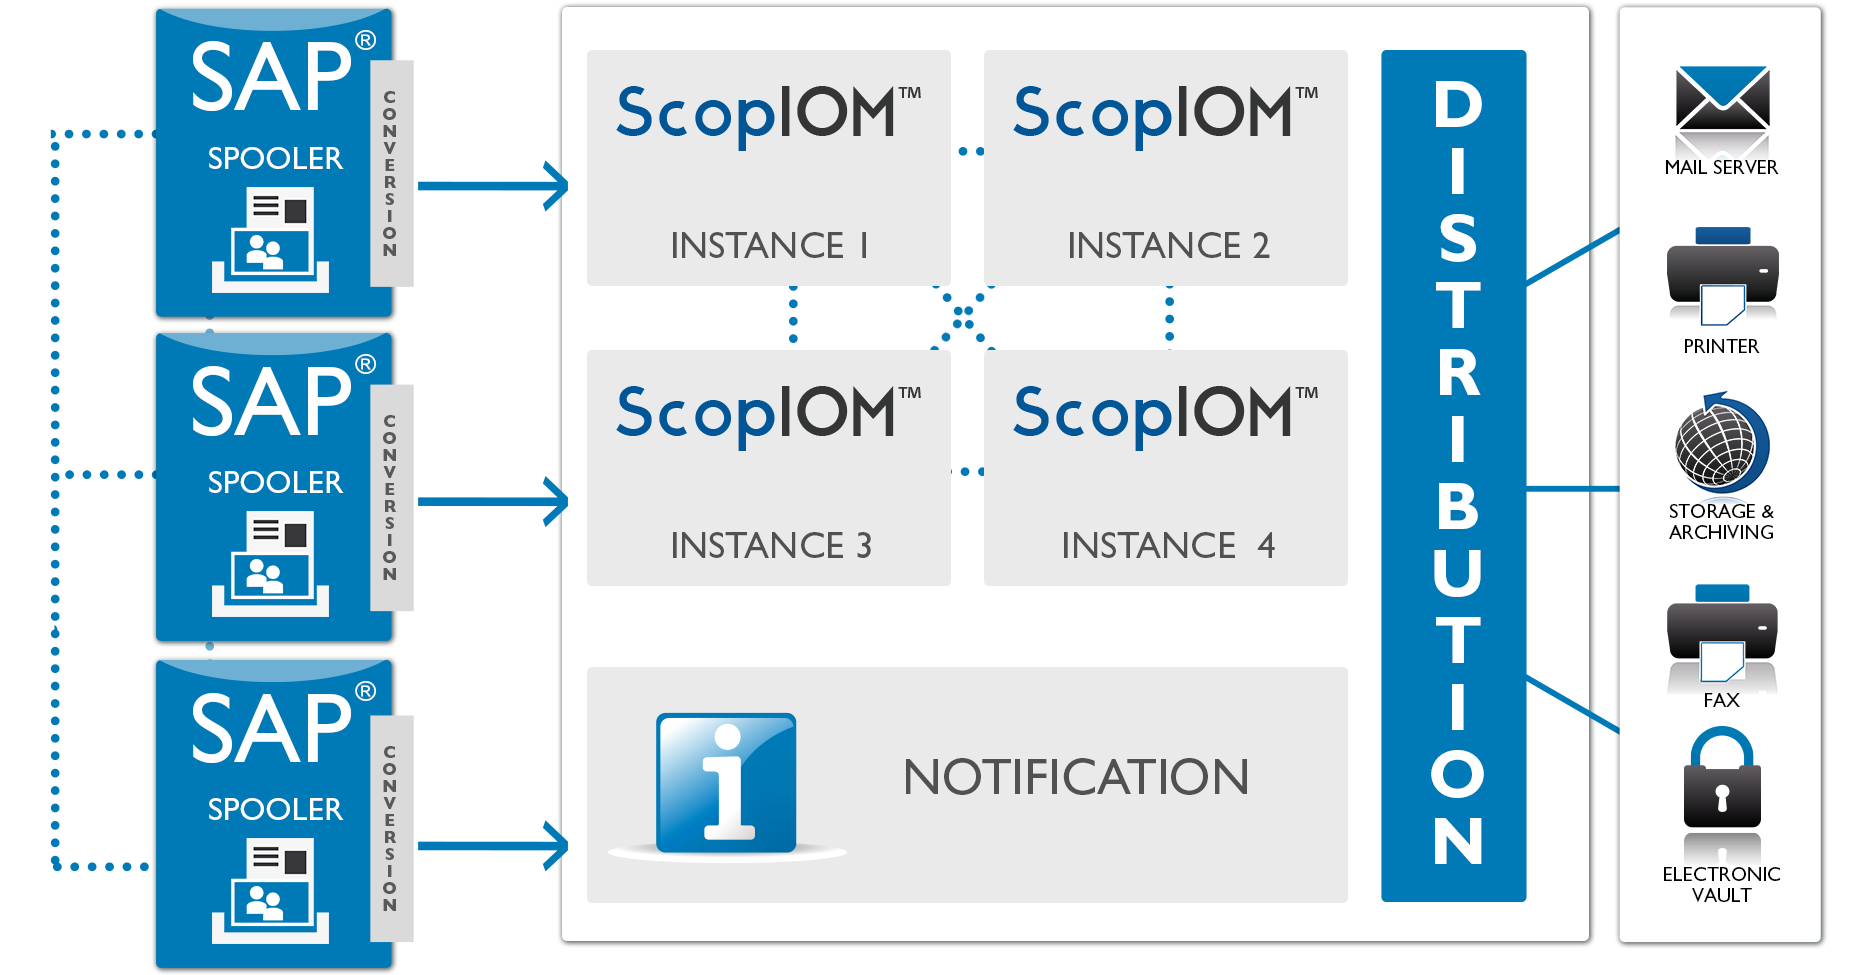 SAP printing with ScopIOM from MPI Tech